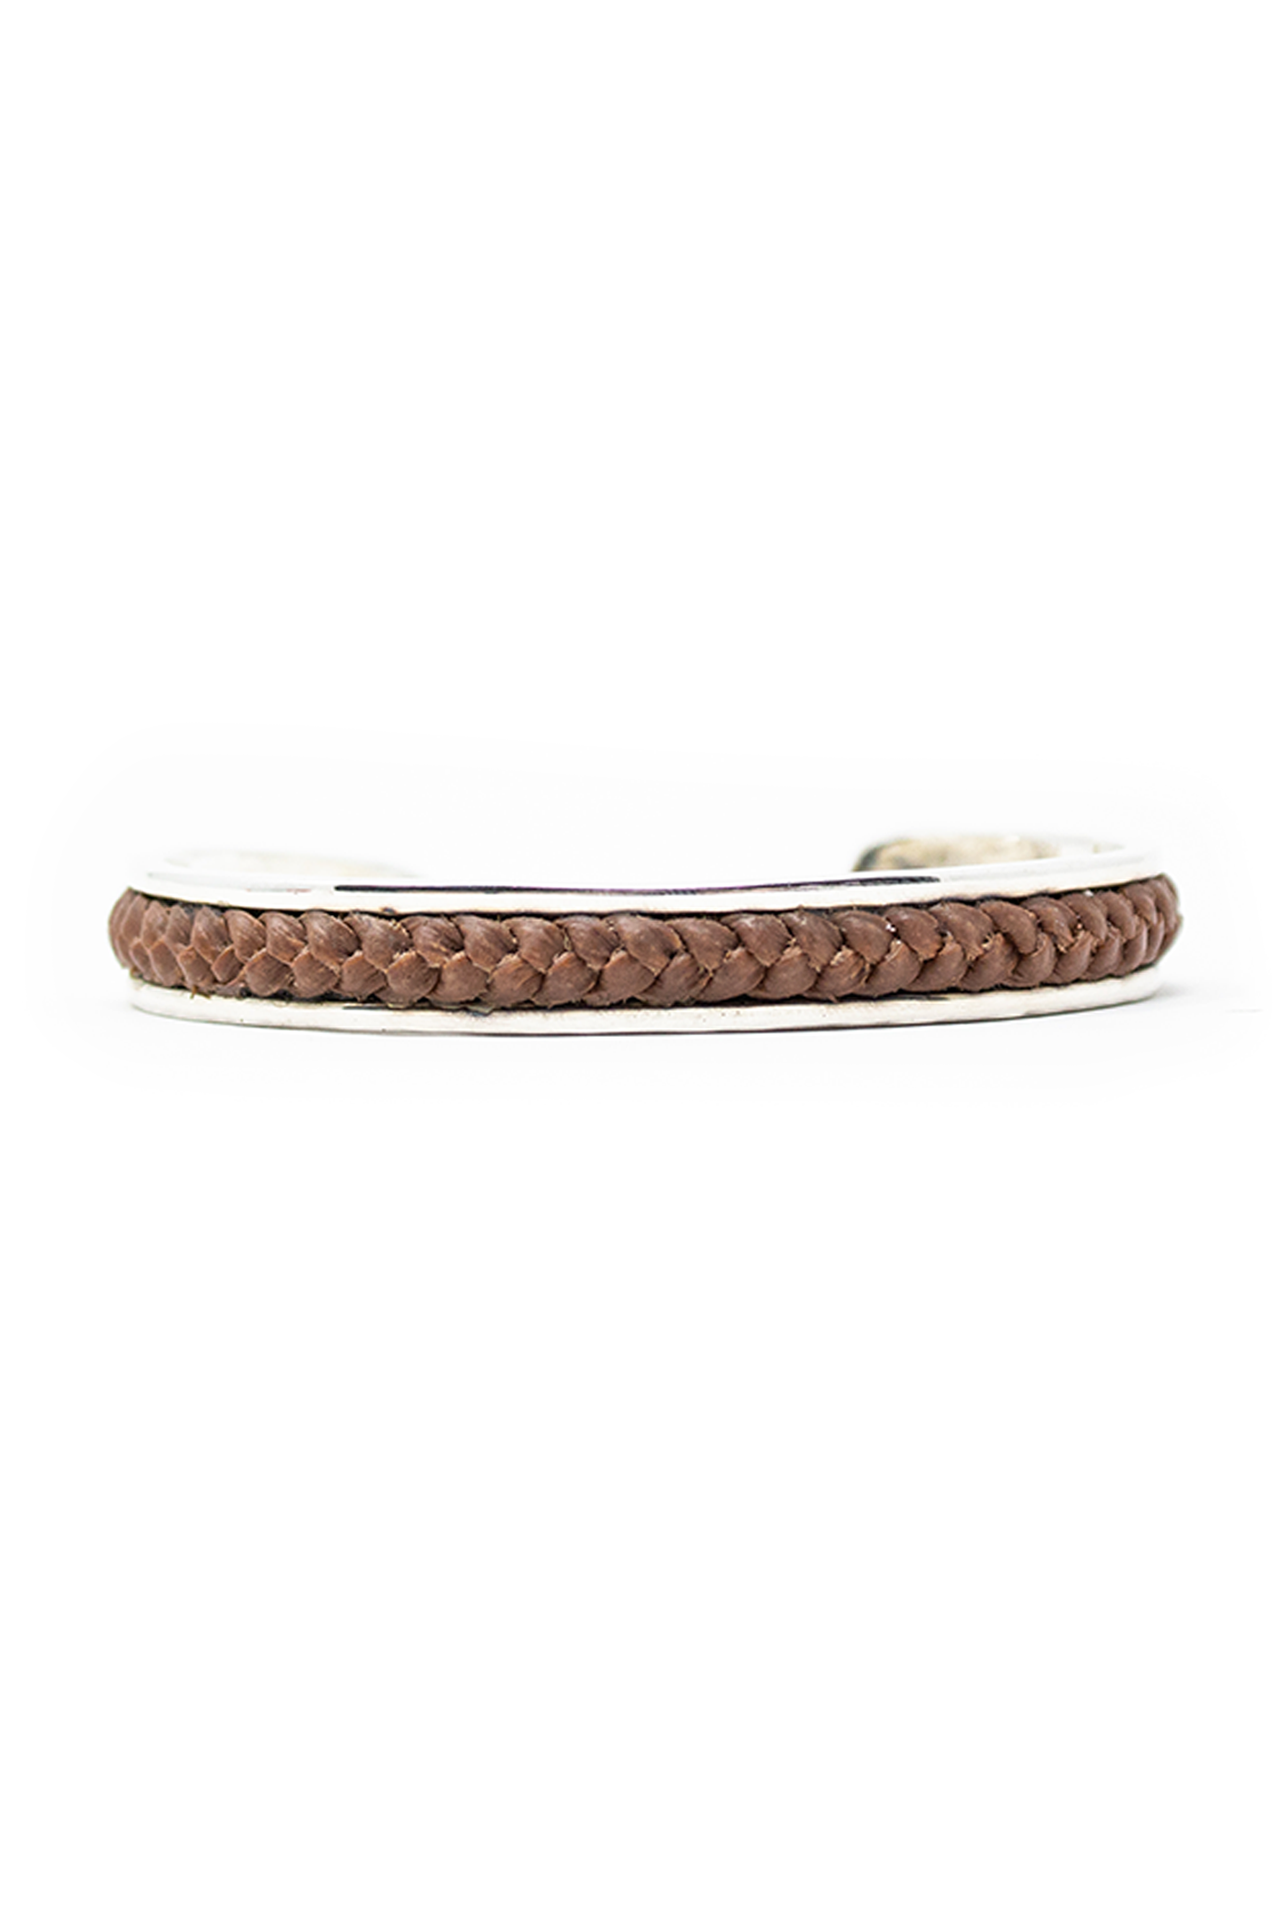 Silver Satin Finish Bangle With Brown Leather